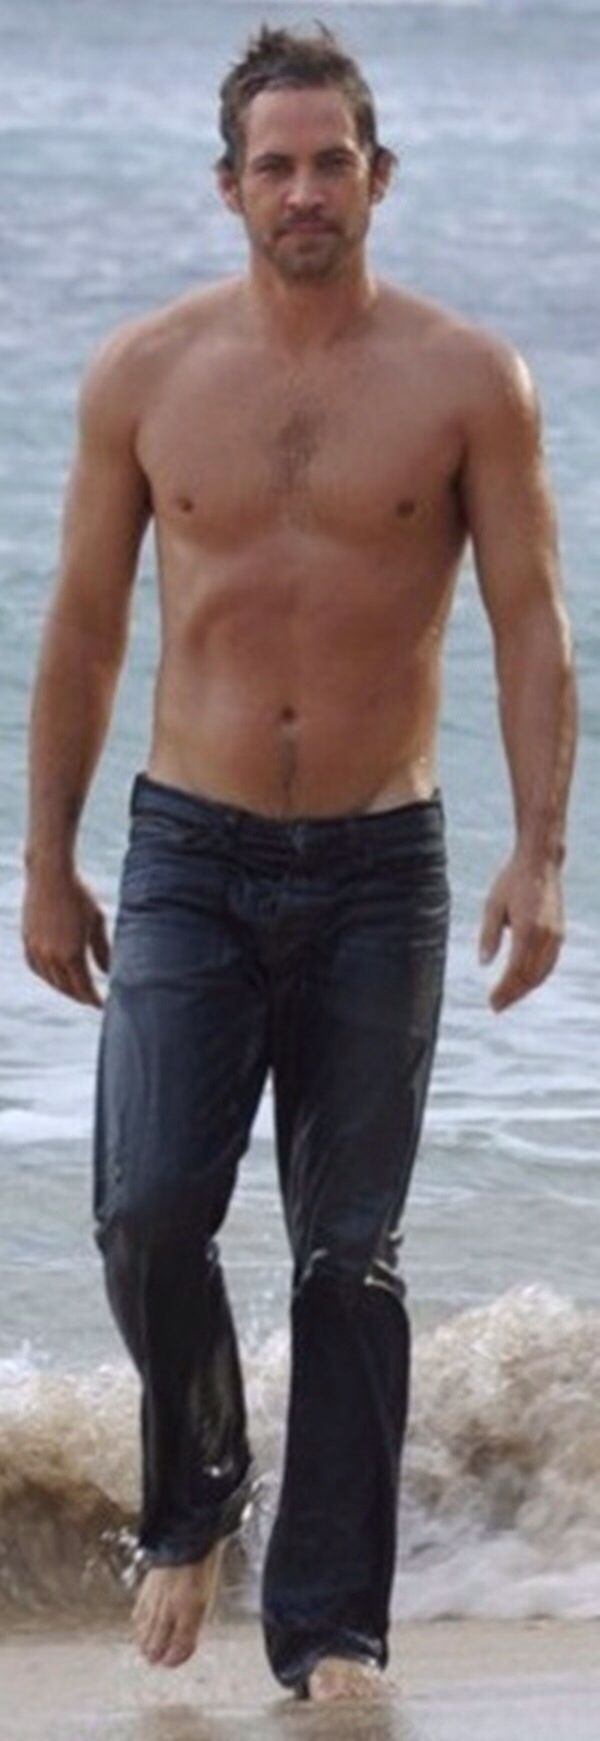 Paul Walker so sexy! I would rather have this (age, body and looks) wrapped around me then some stupid, young, super buff dumb ass!